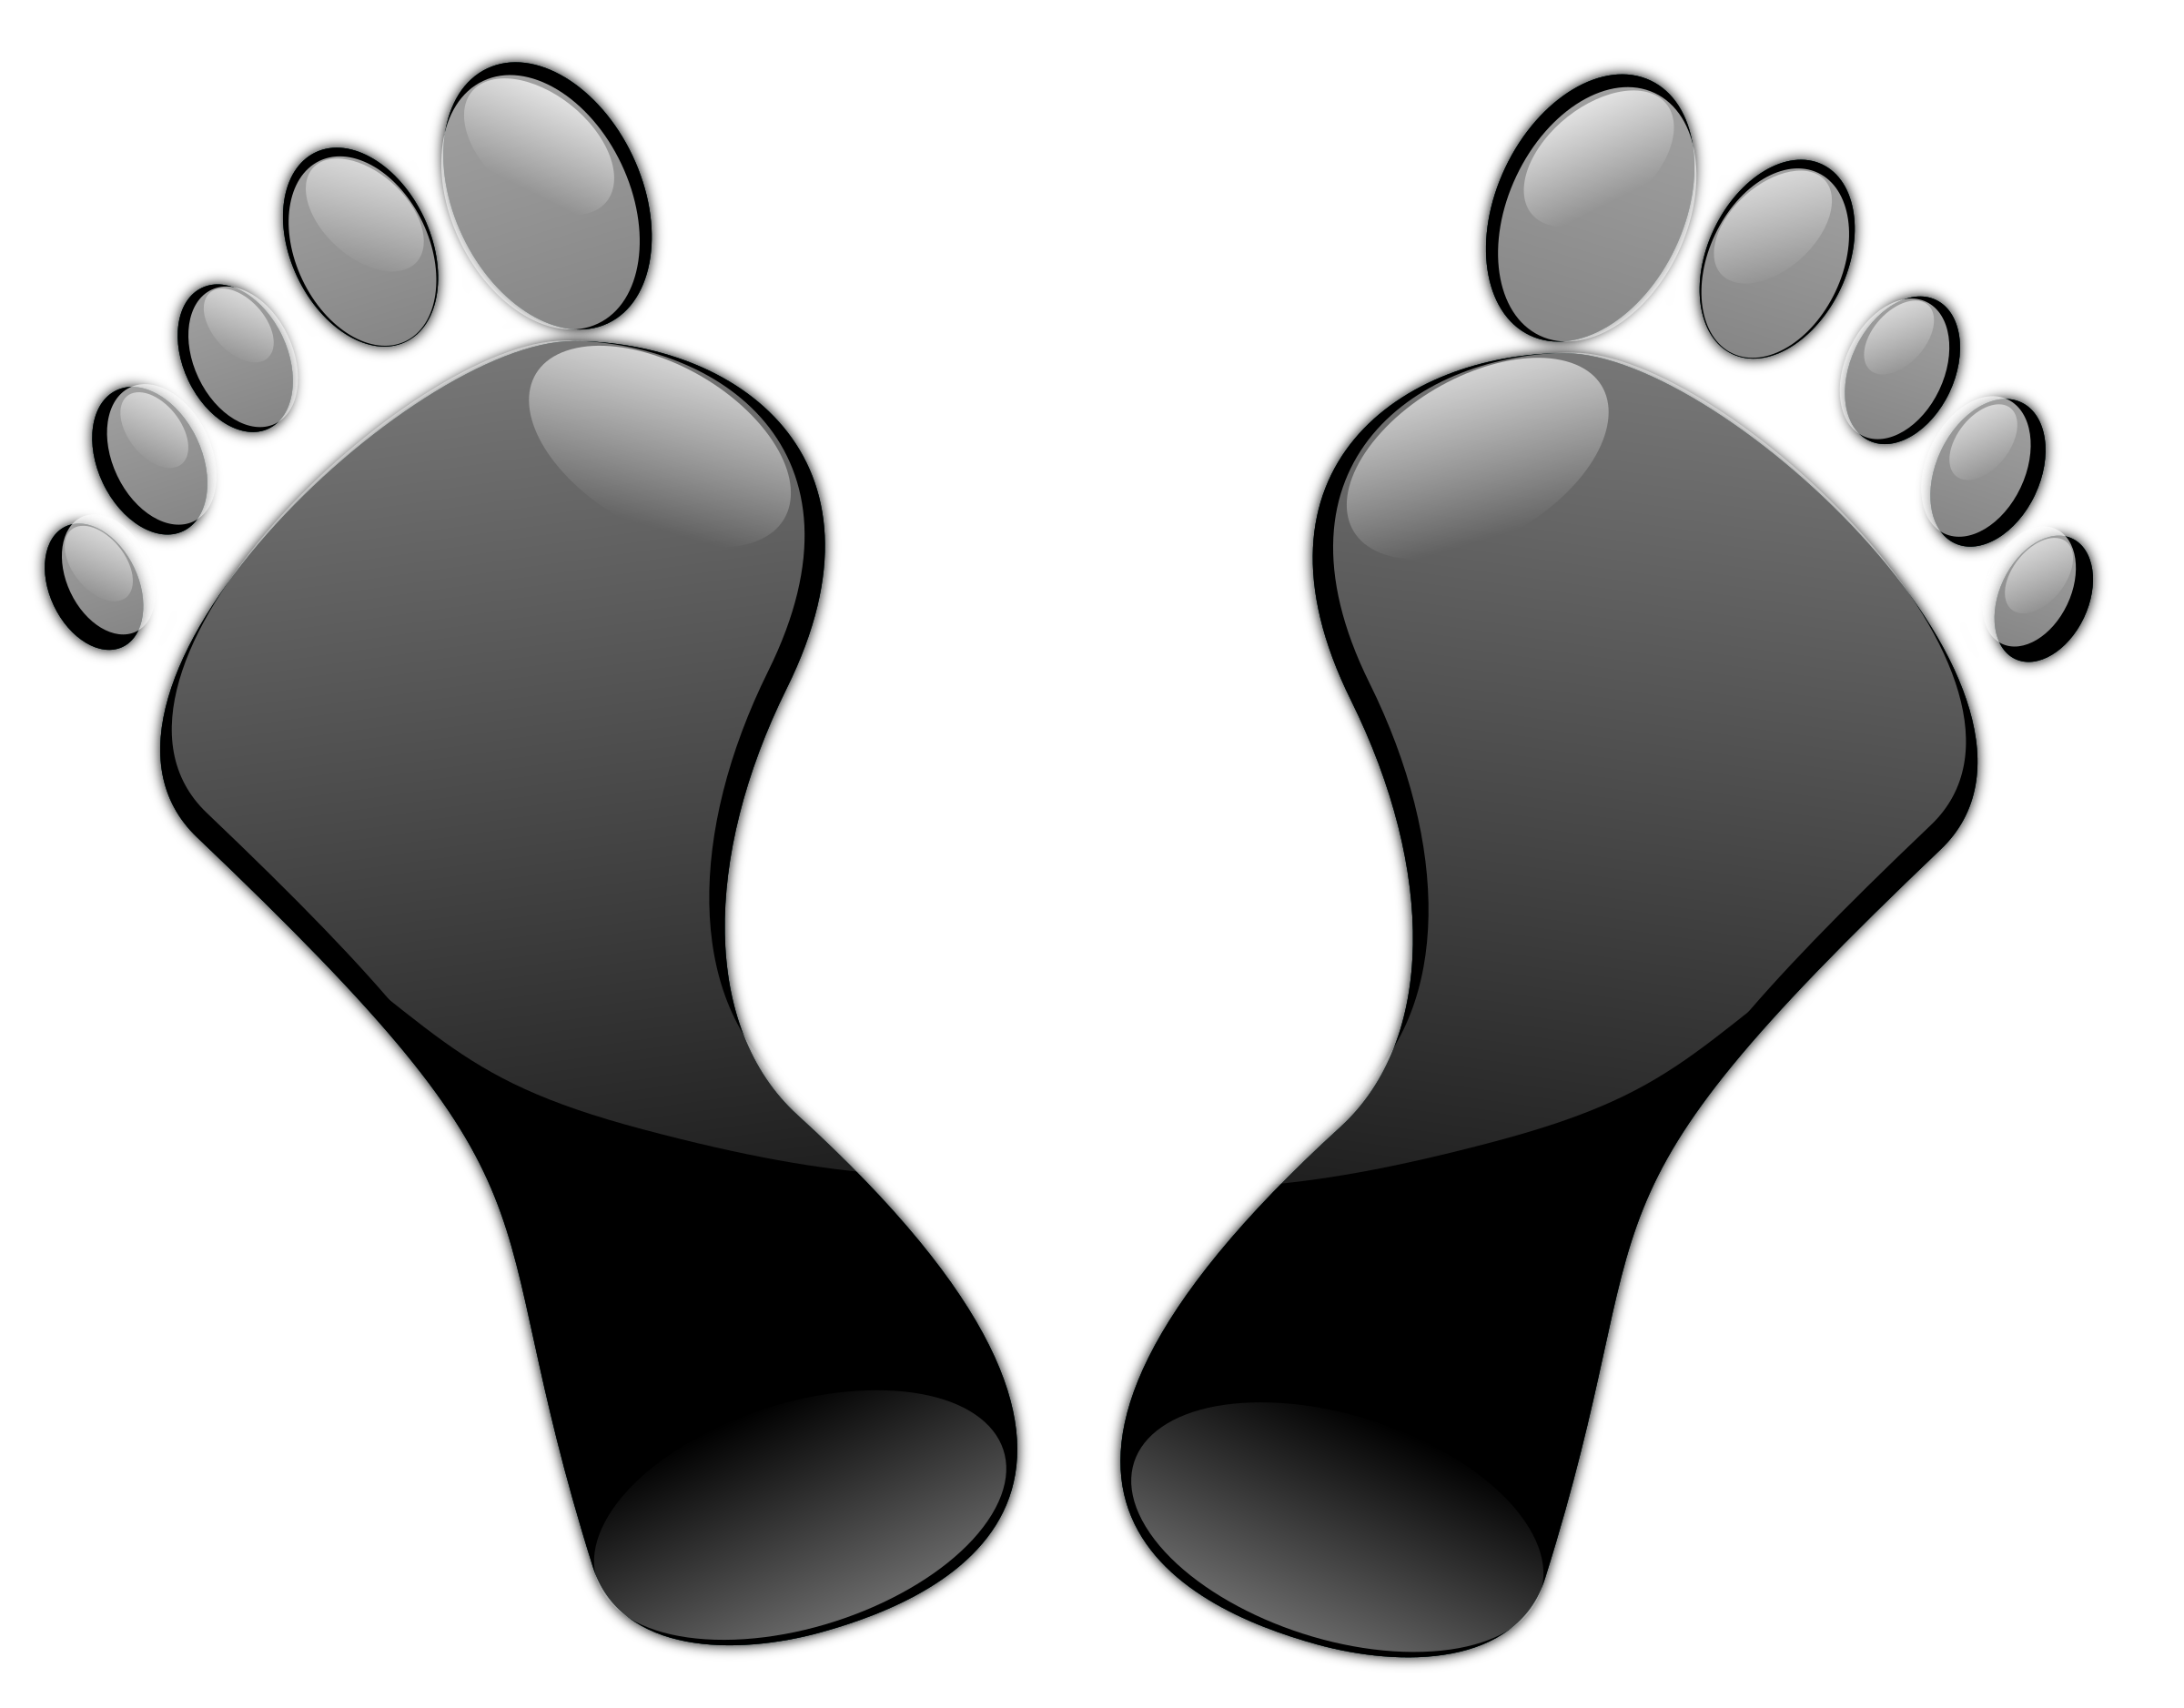 Footsteps clipart cute. Black feet icons png